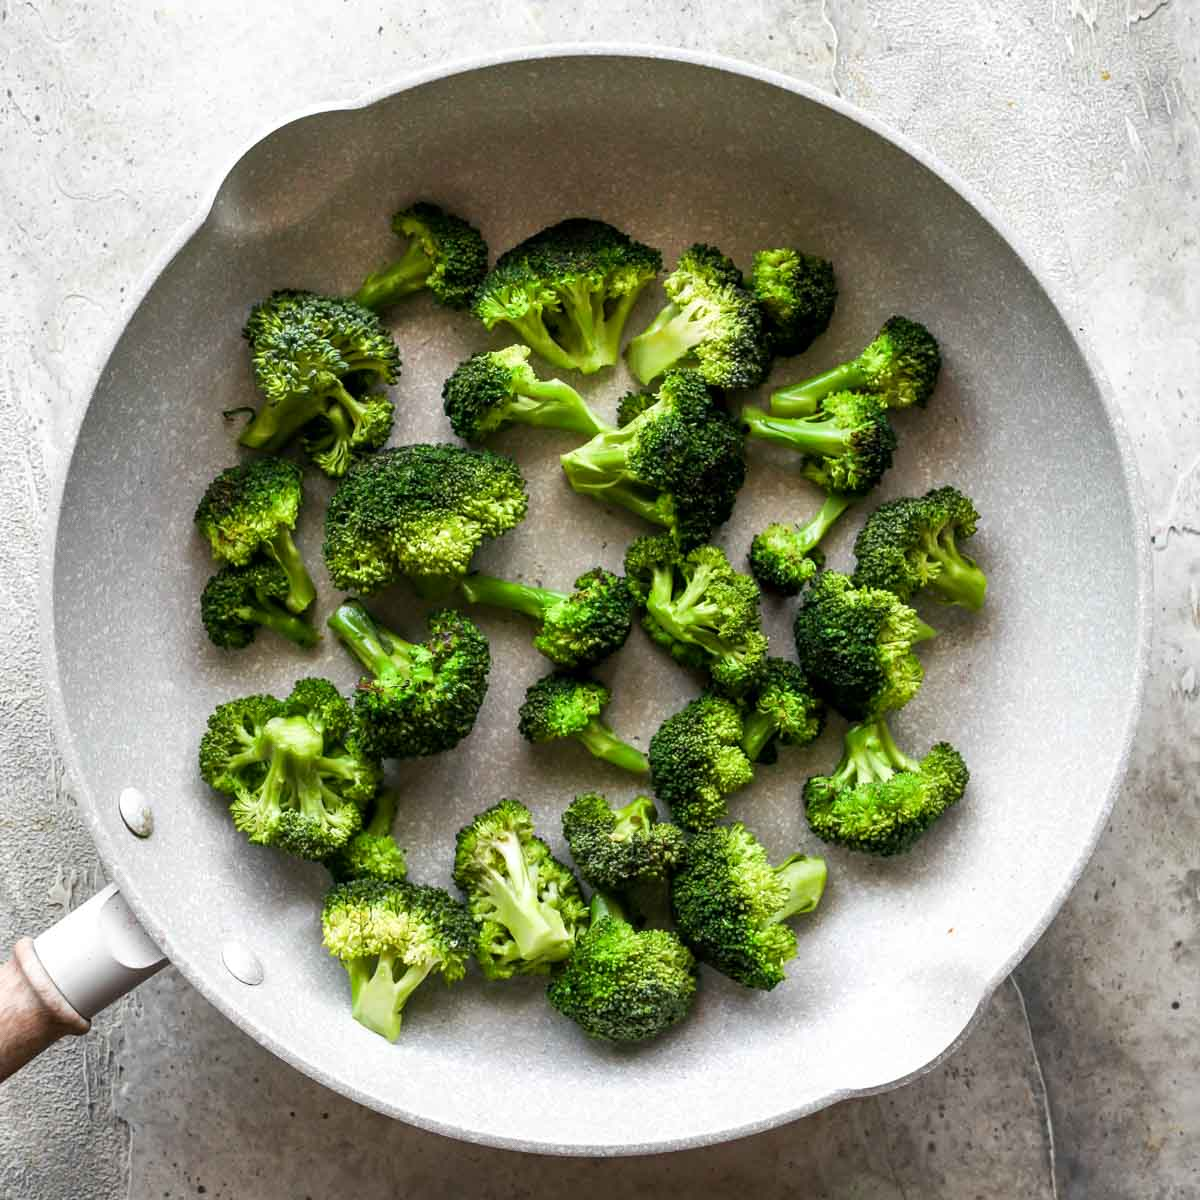 Broccoli florets being sautéed in a skillet